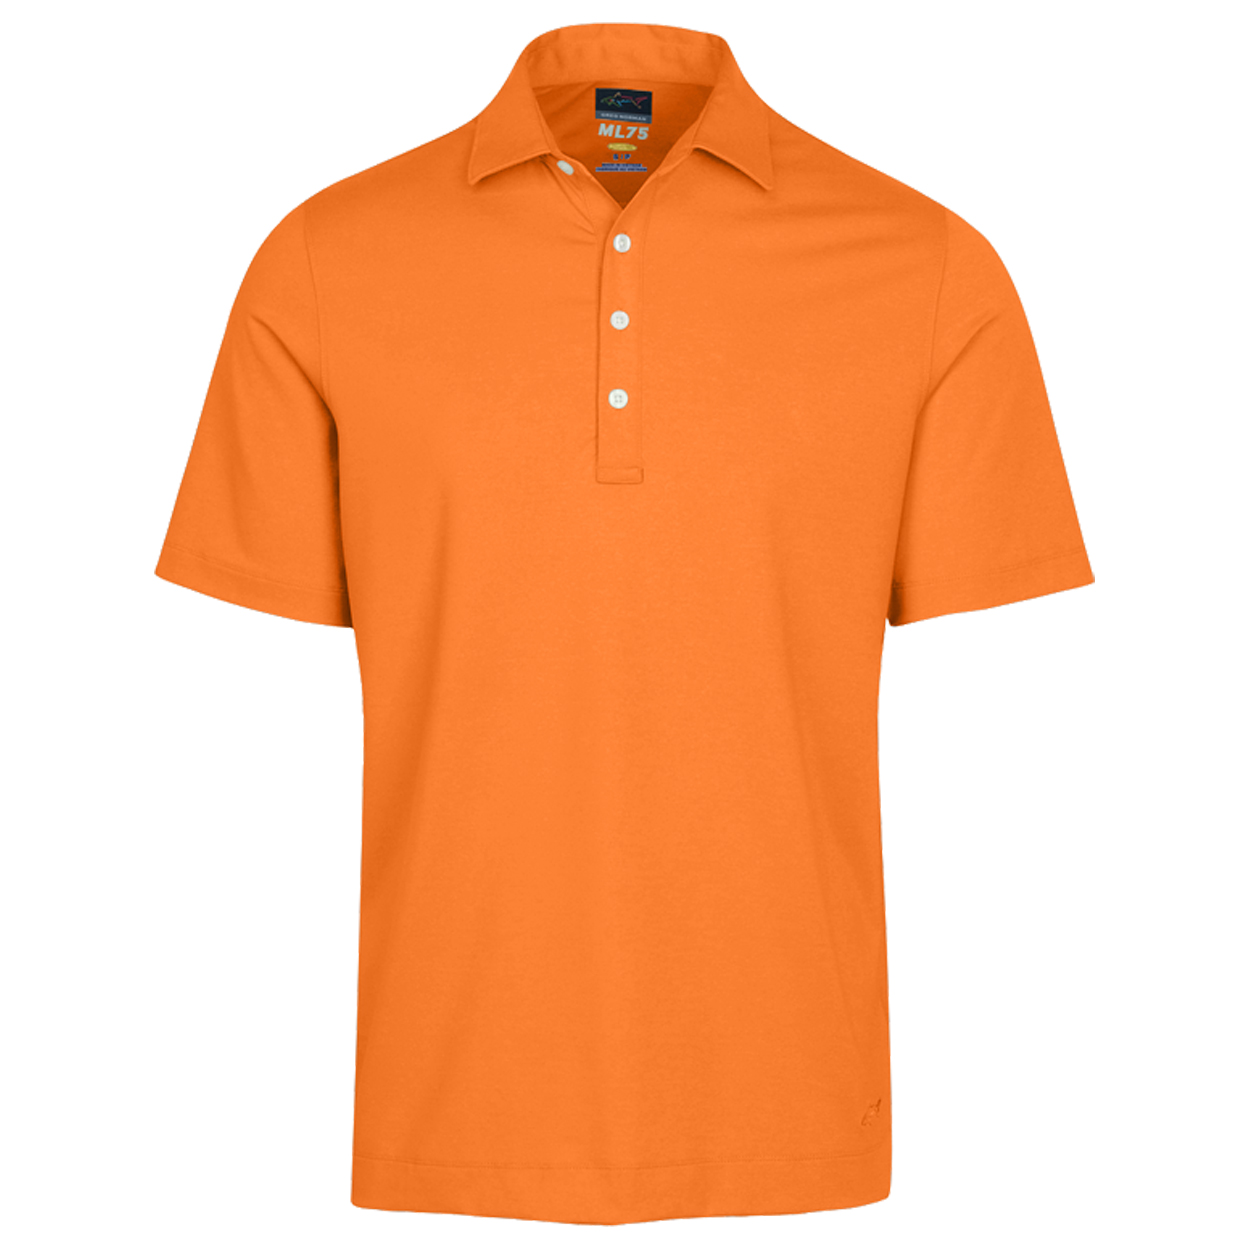 Greg norman men 39 s tech performance heathered polo golf for All polo shirt brands